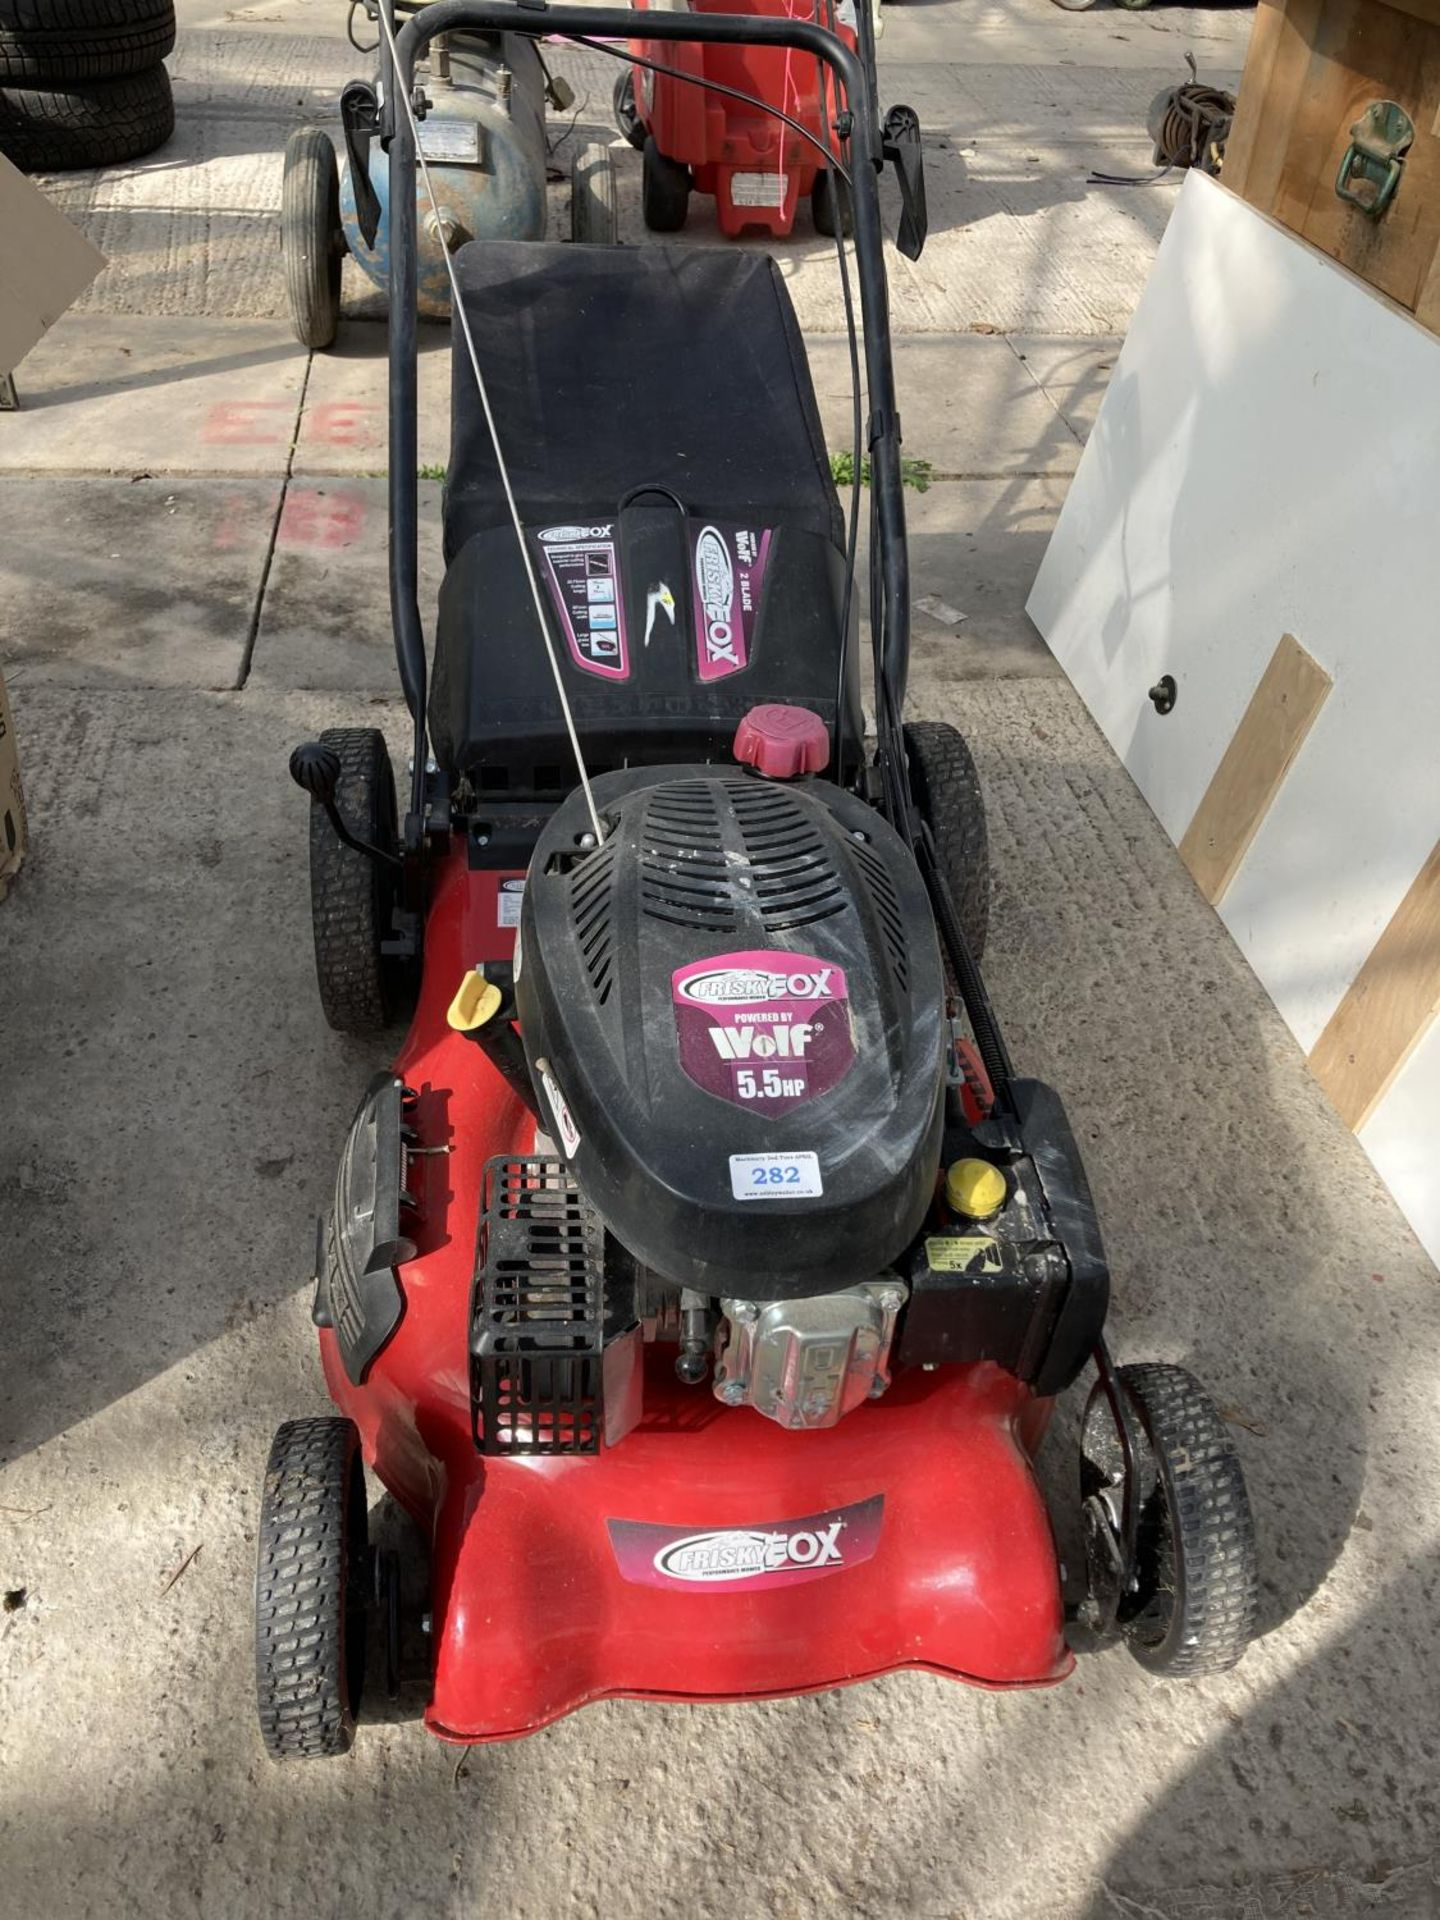 A FRISKY FOX MOWER WITH 5.5HP WOLF ENGINE NO VAT